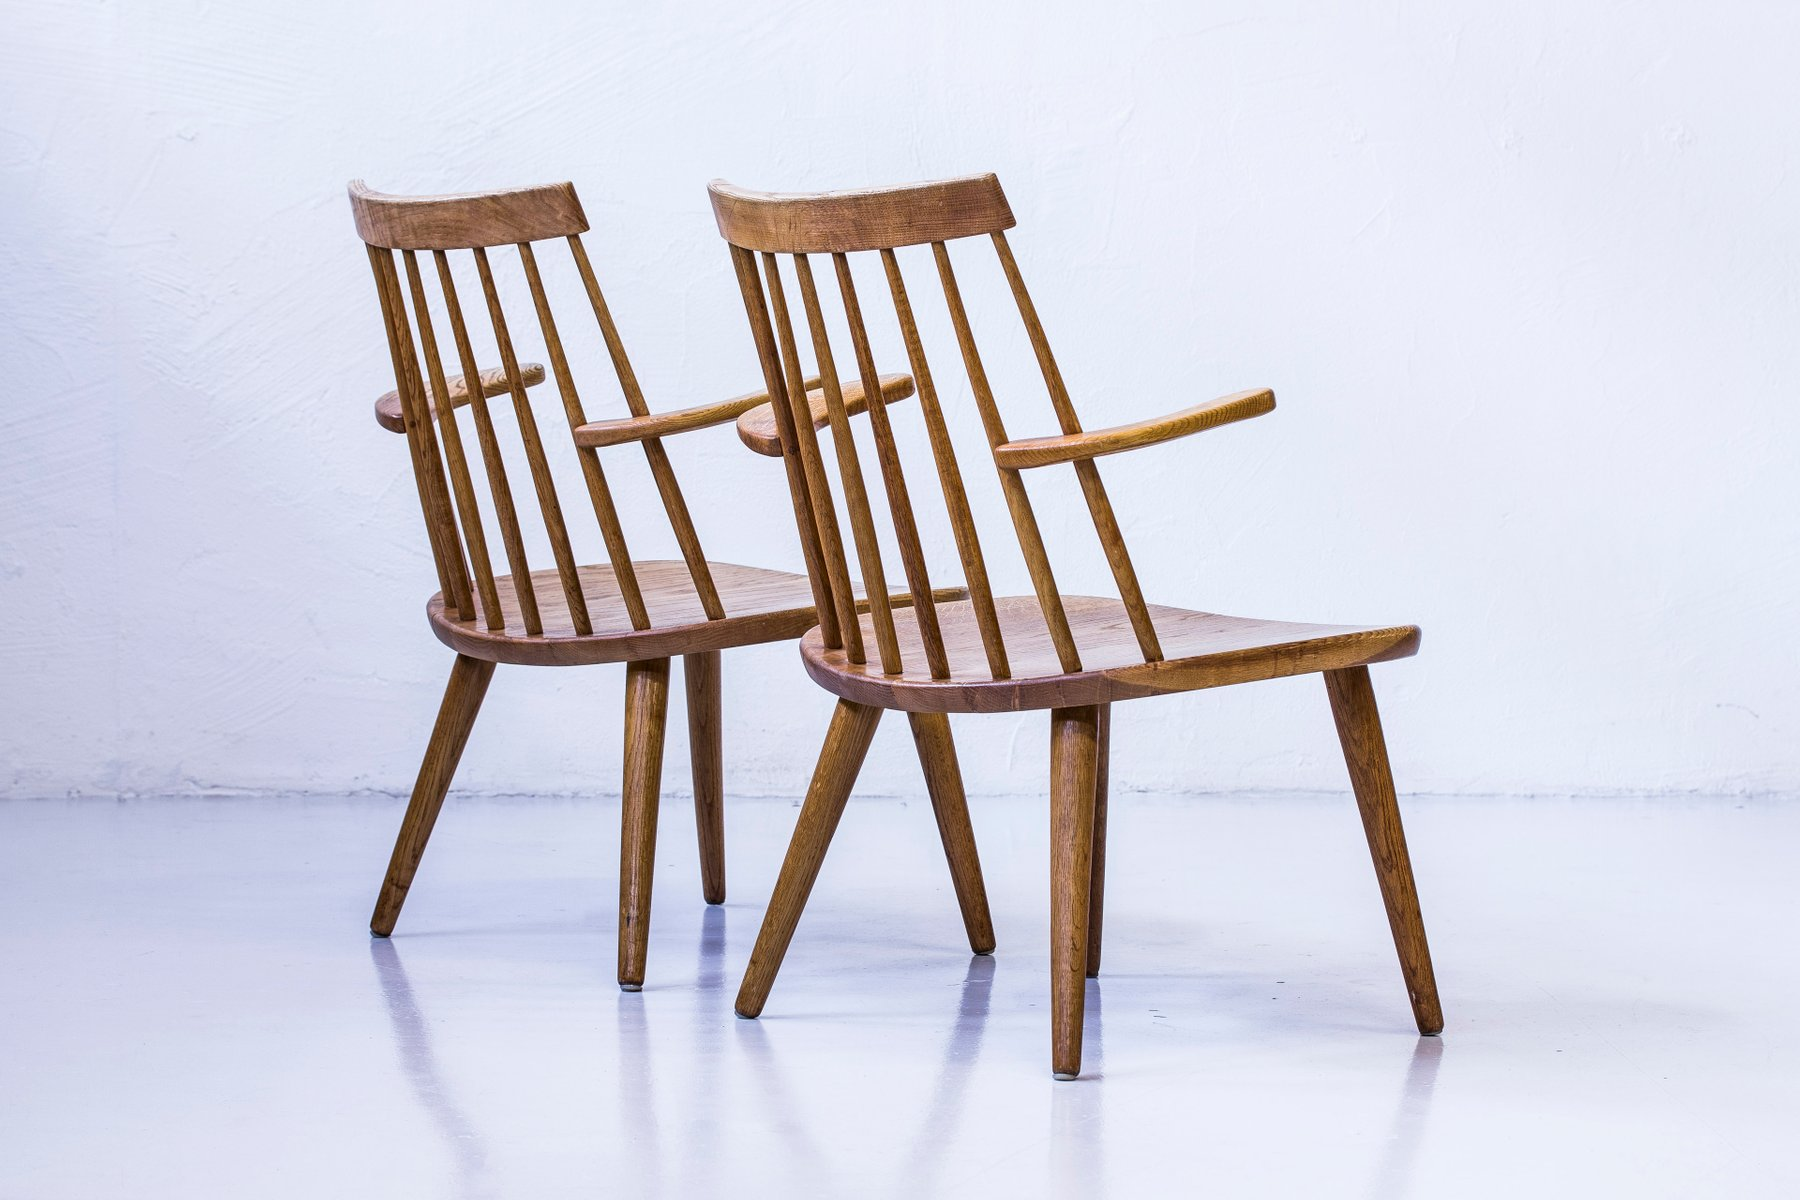 Sibbo Loungette Chairs by Yngve Ekström for Stolab, 1950s, Set of 2 for sale at Pamono